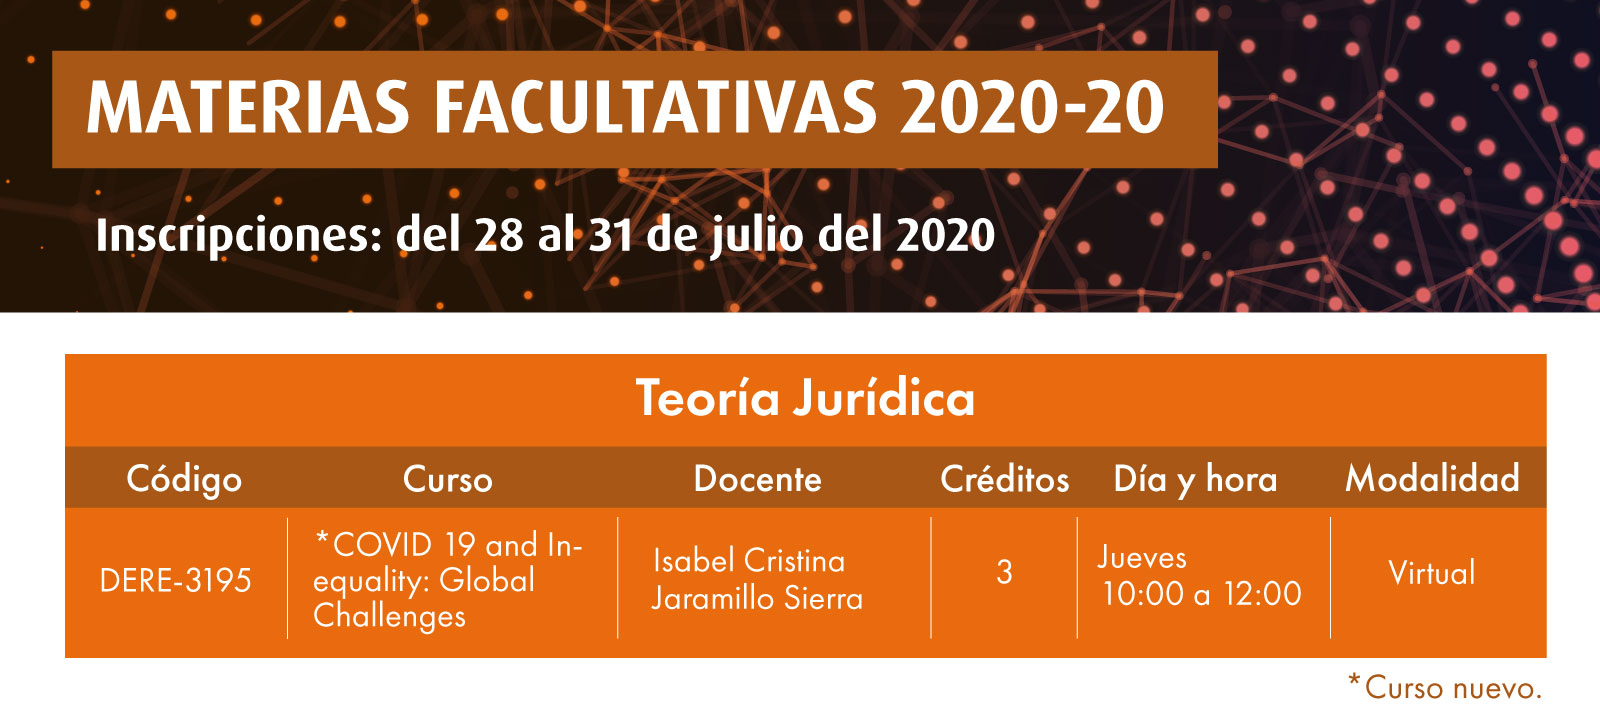 Facultativa 2020-20: COVID 19 and Inequality: Global Challenges